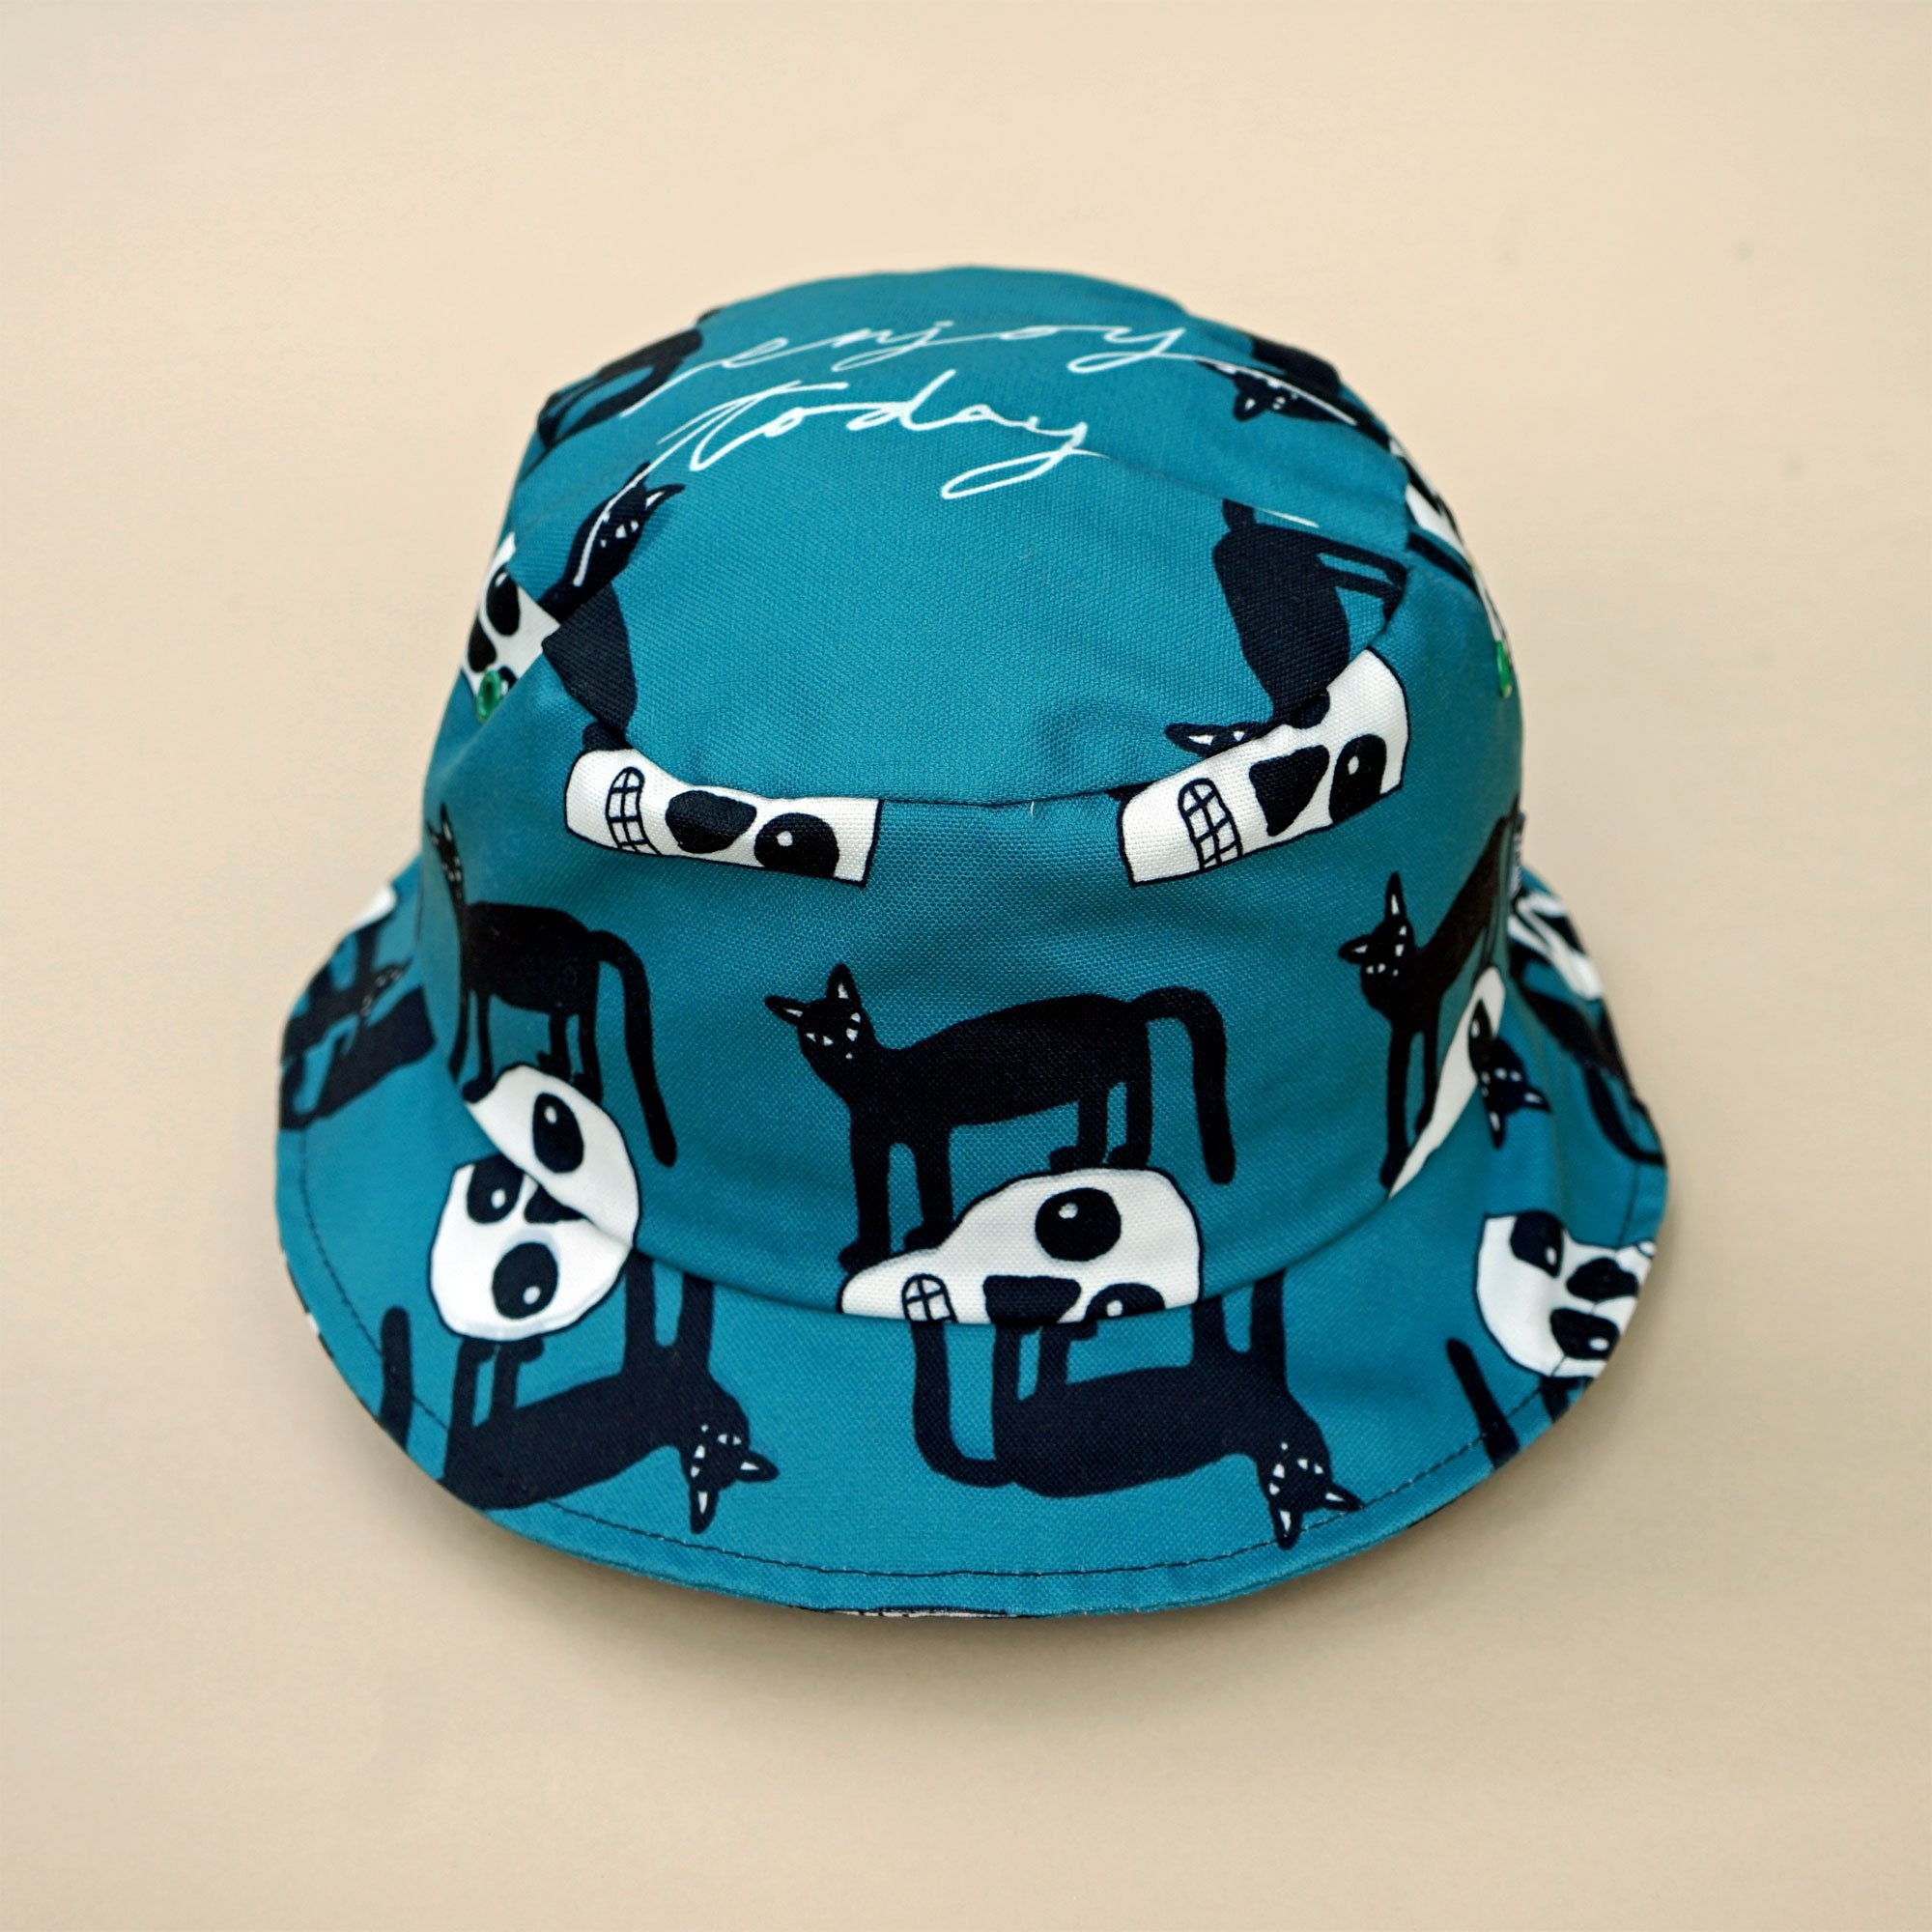 Cool black cat bucket hat in teal. Made of cotton canvas. A must have summer essentails